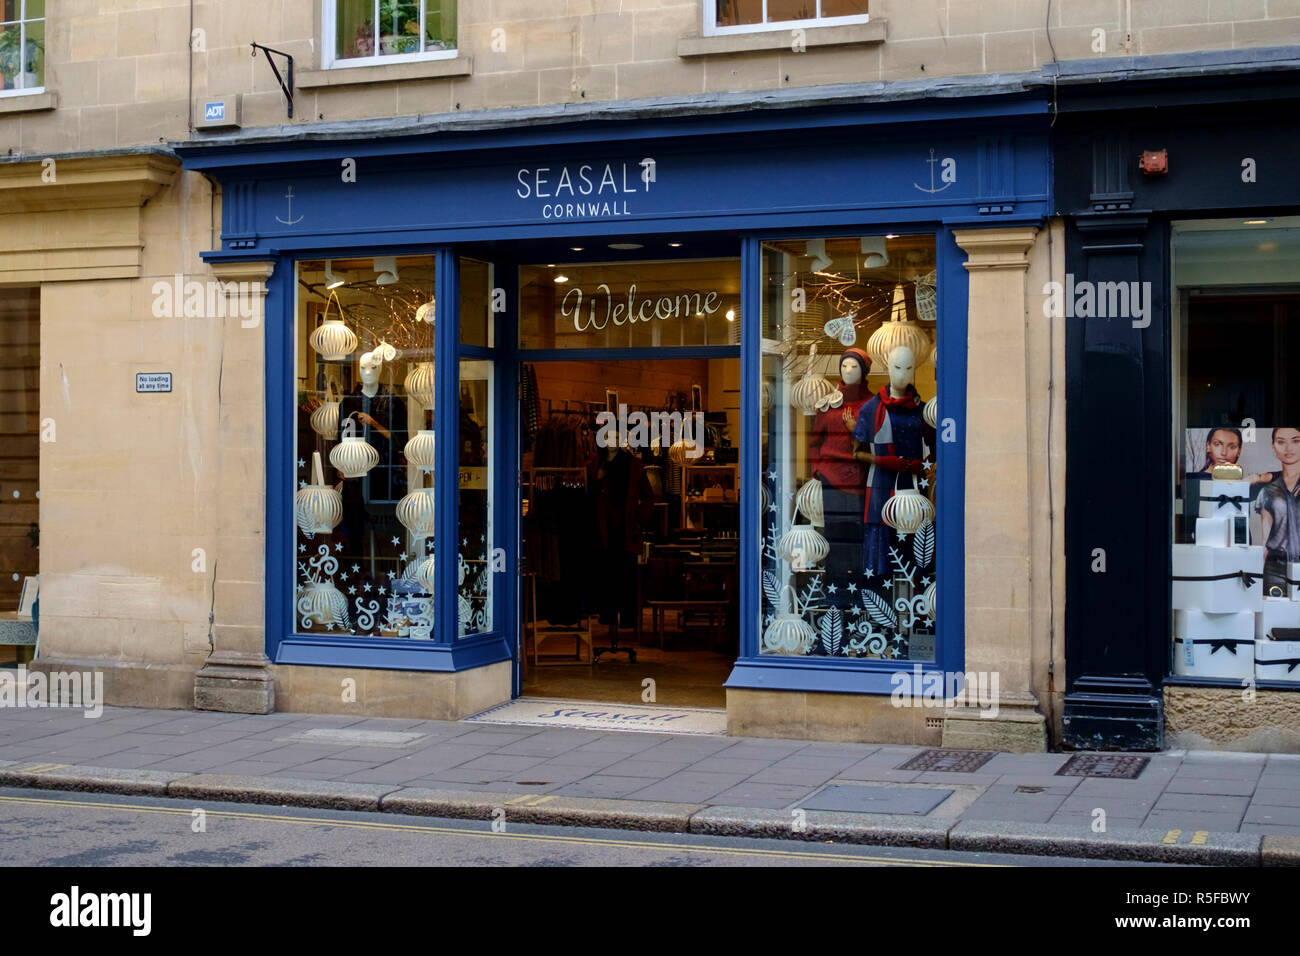 A winters day in Bath city Center, somerset england UK  Seasalt shop - Stock Image